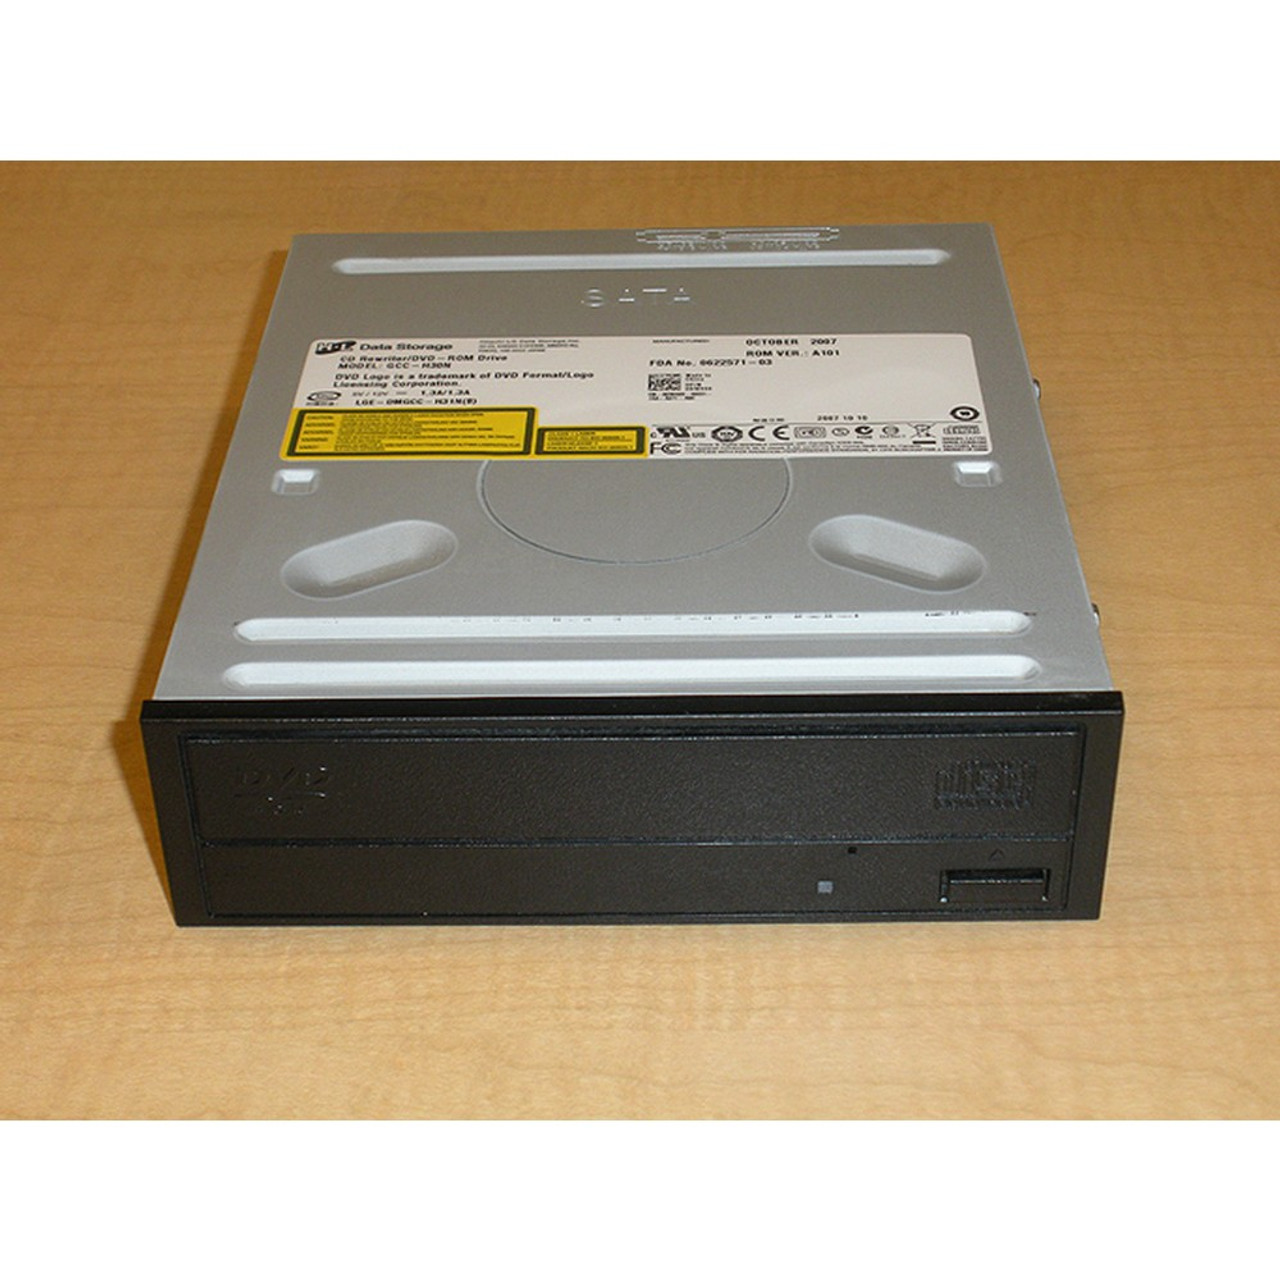 Dell PowerEdge CD-RW/DVD-ROM Drive SATA 5 25